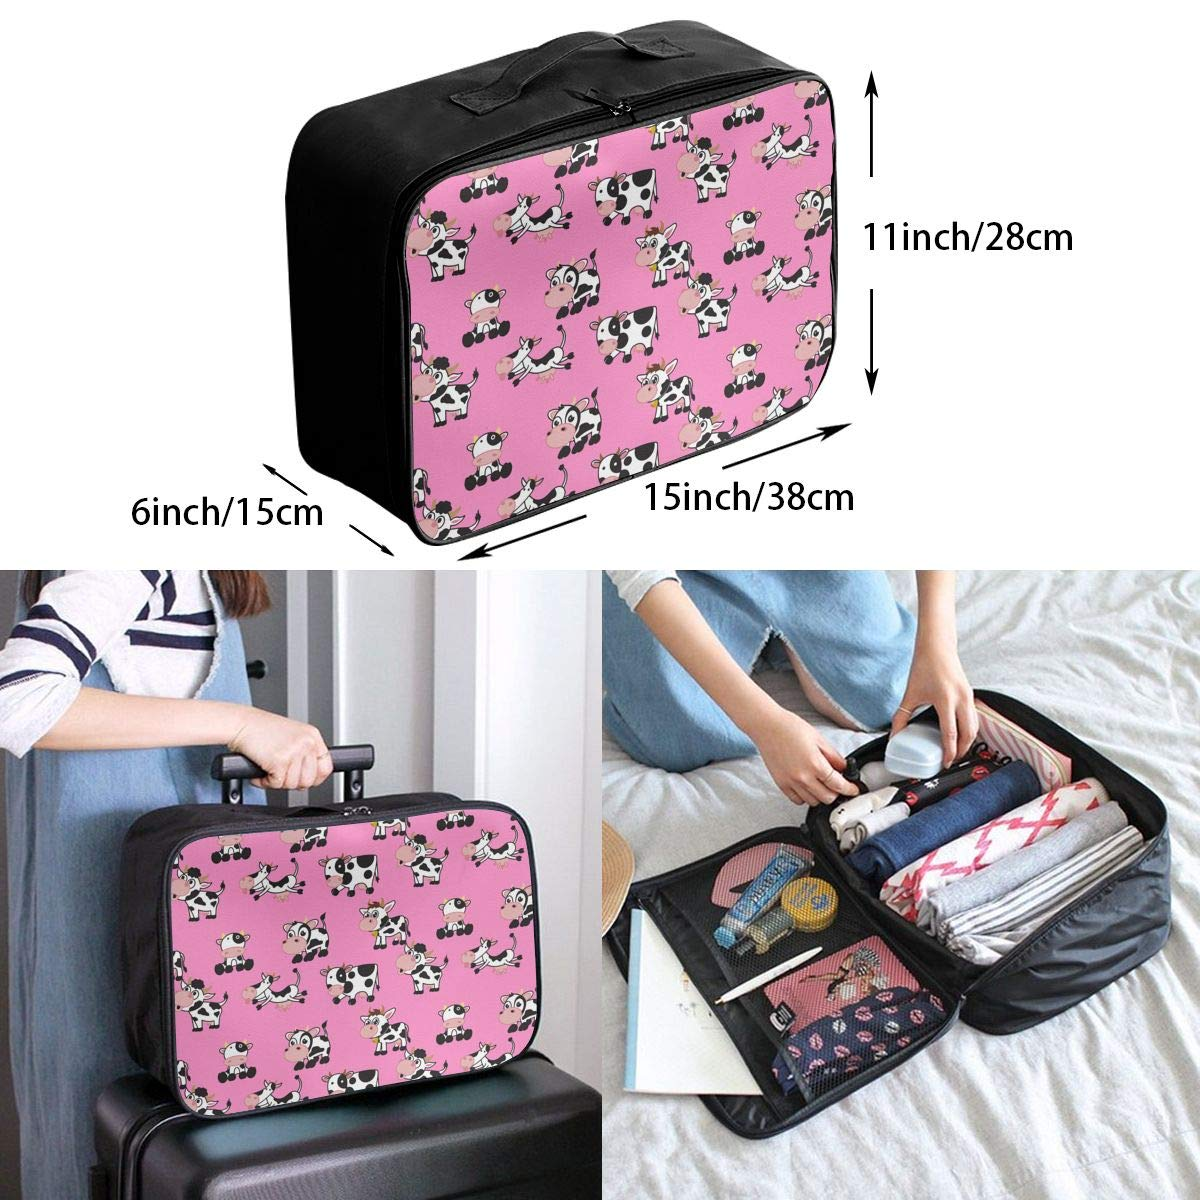 YueLJB Cute Cartoon Cow Lightweight Large Capacity Portable Luggage Bag Travel Duffel Bag Storage Carry Luggage Duffle Tote Bag